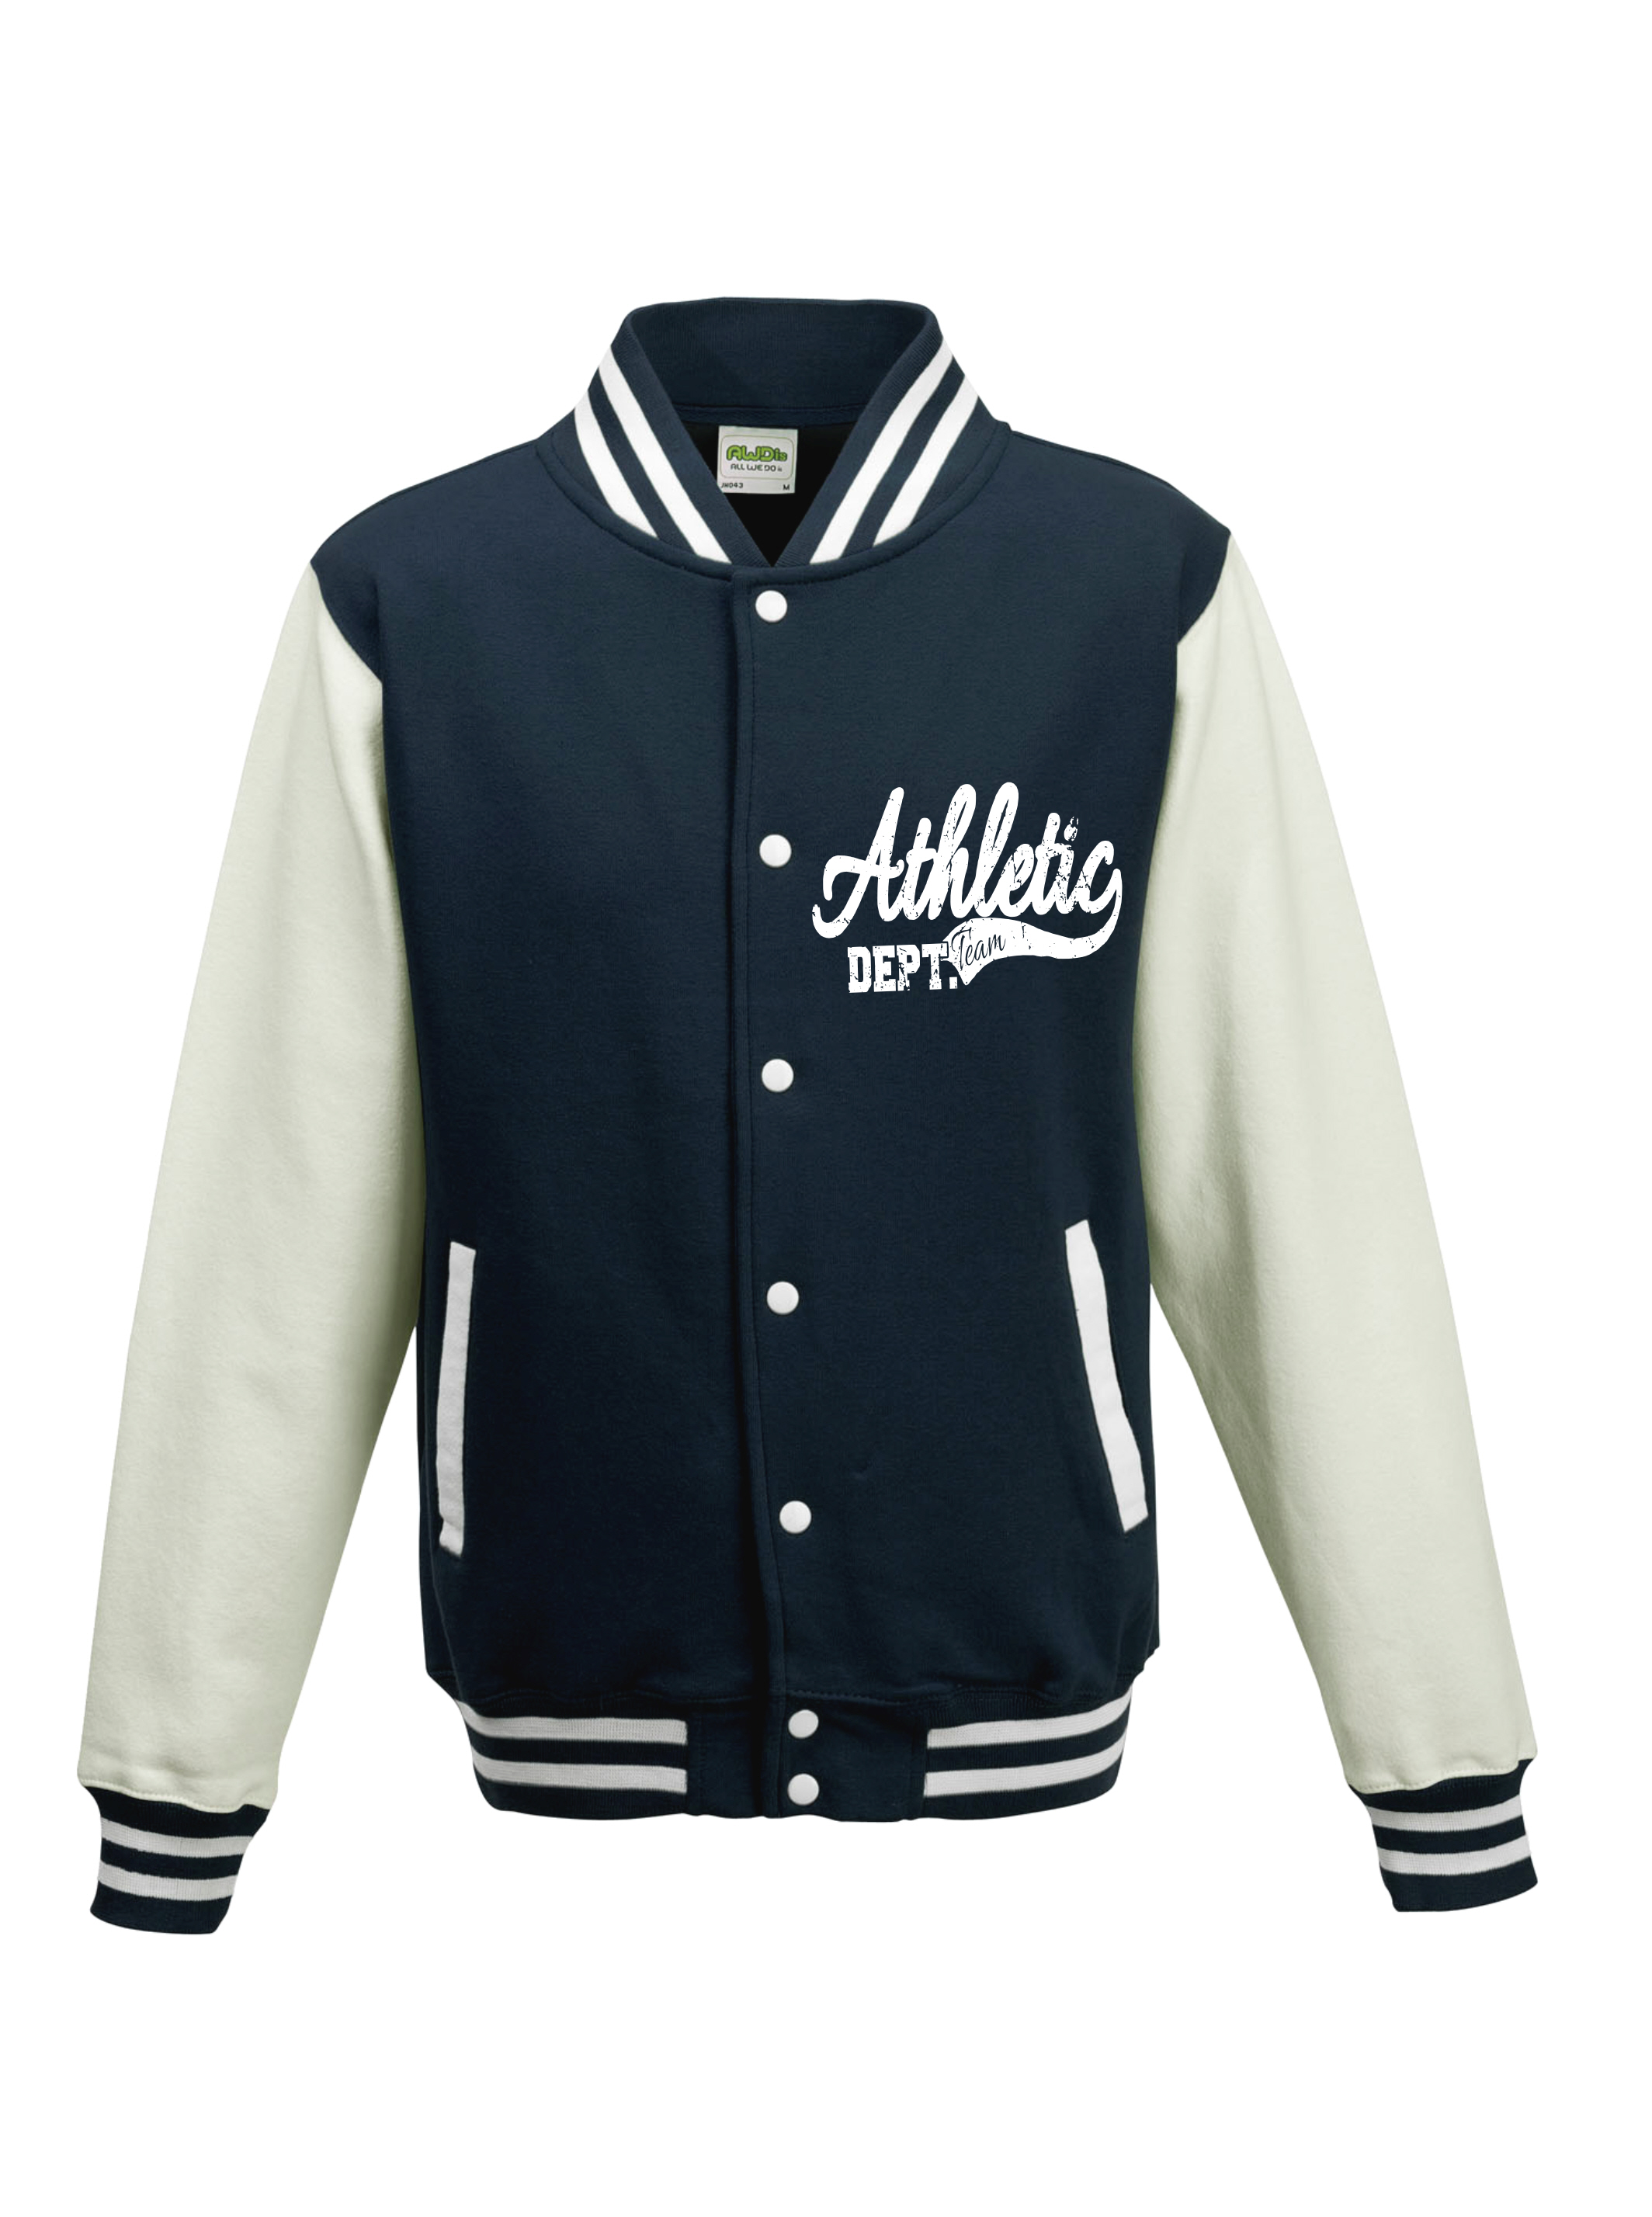 Touchdown American football team varsity jacket youth adult sizes ... a25bc5edc